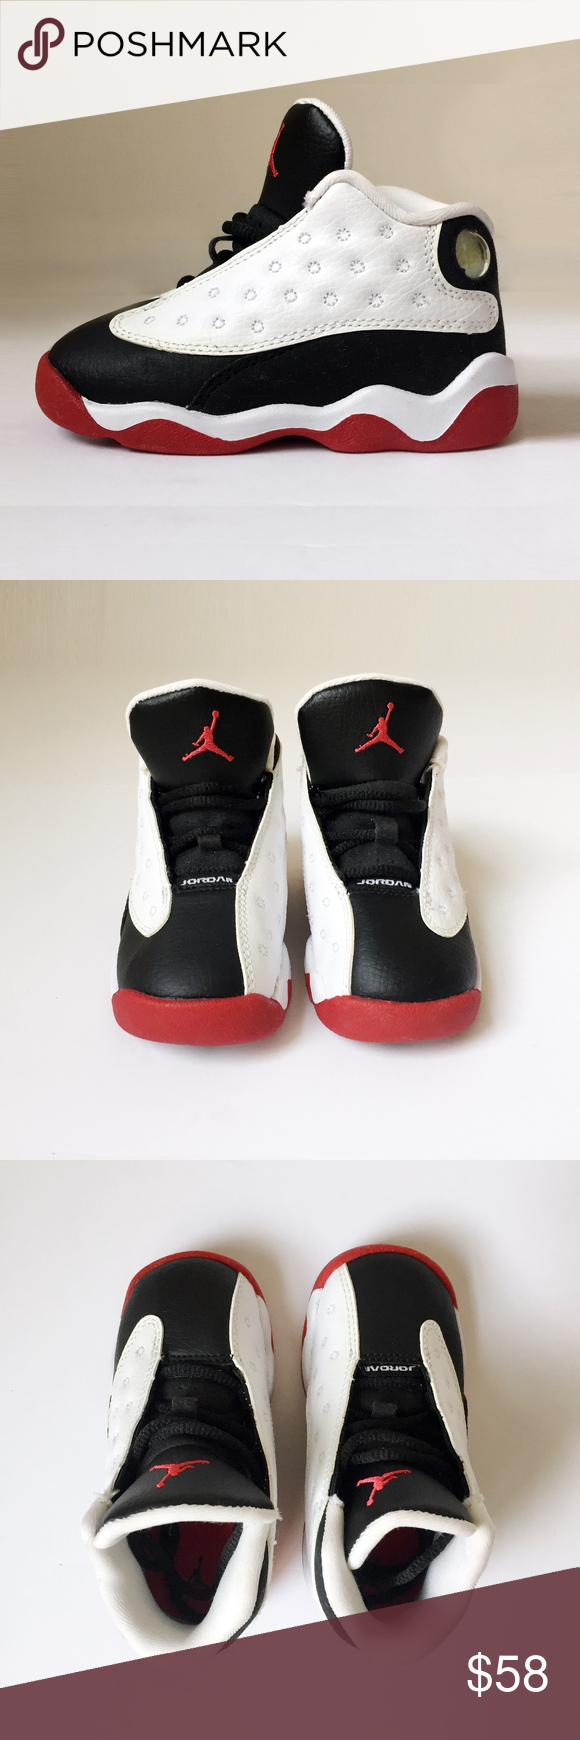 competitive price 5f23d 8b219 NIKE AIR JORDAN retro 13 he got game shoes kids 7C NIKE AIR ...